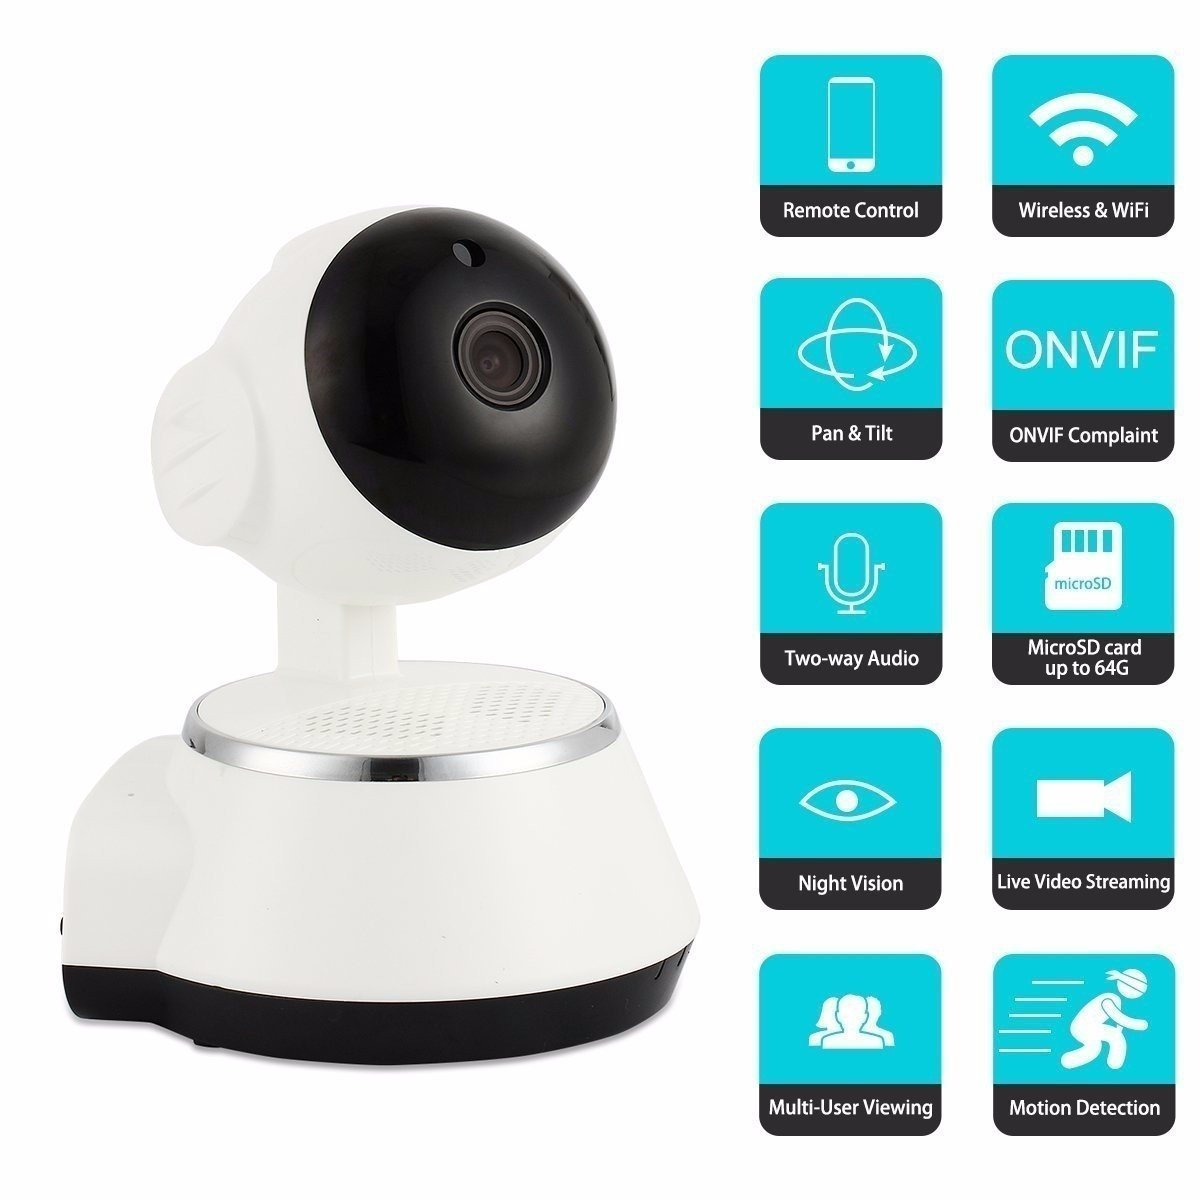 CAMERA DE SURVEILLANCE WIRELESS Wireless Monitor, M.Way Vide Wifi Monitor HD 720P Remote Home Security Camera Night Vision WIFI Webcam - Vendu a des clients avises. (NOT AN IP CAMERA)